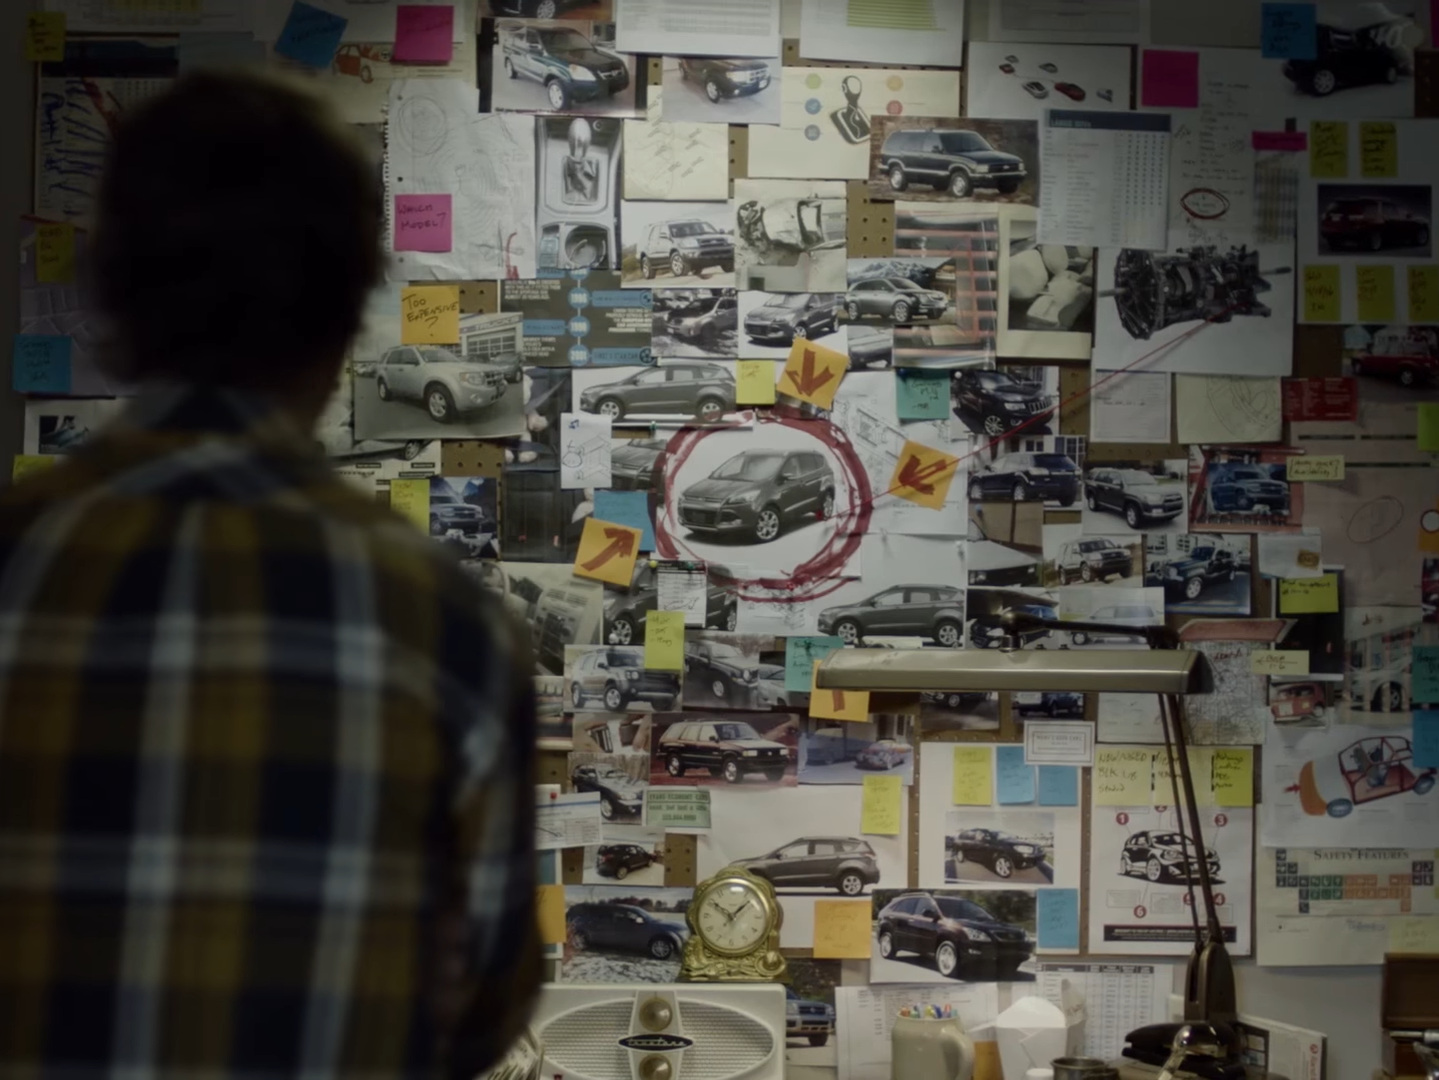 Nst 92 Dark S01e02 2017 With A Reference To Stranger Things